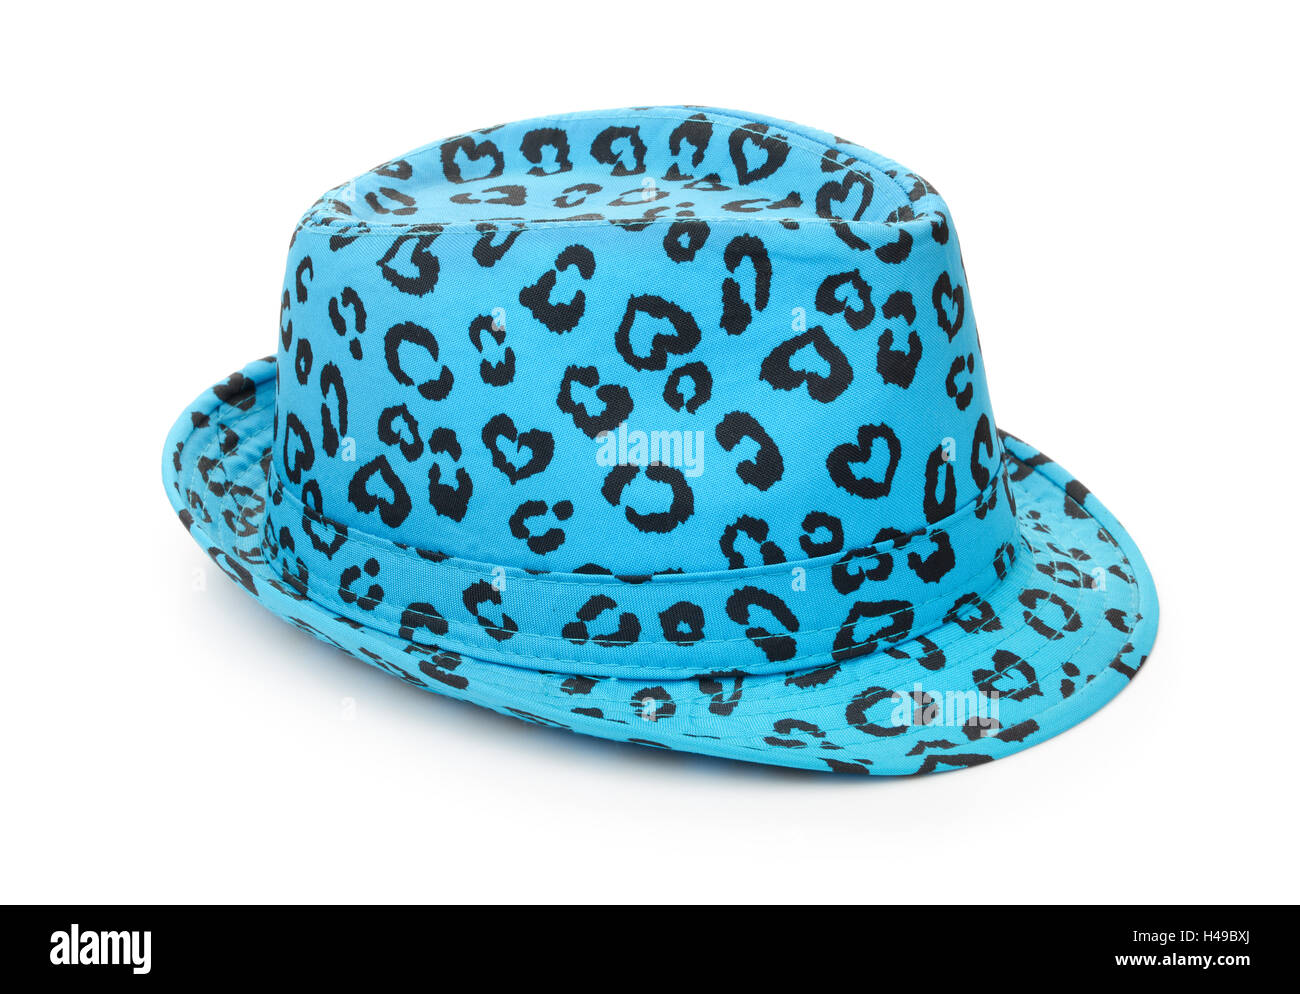 fcdefaa7a30b1 Trilby Hat Stock Photos   Trilby Hat Stock Images - Alamy